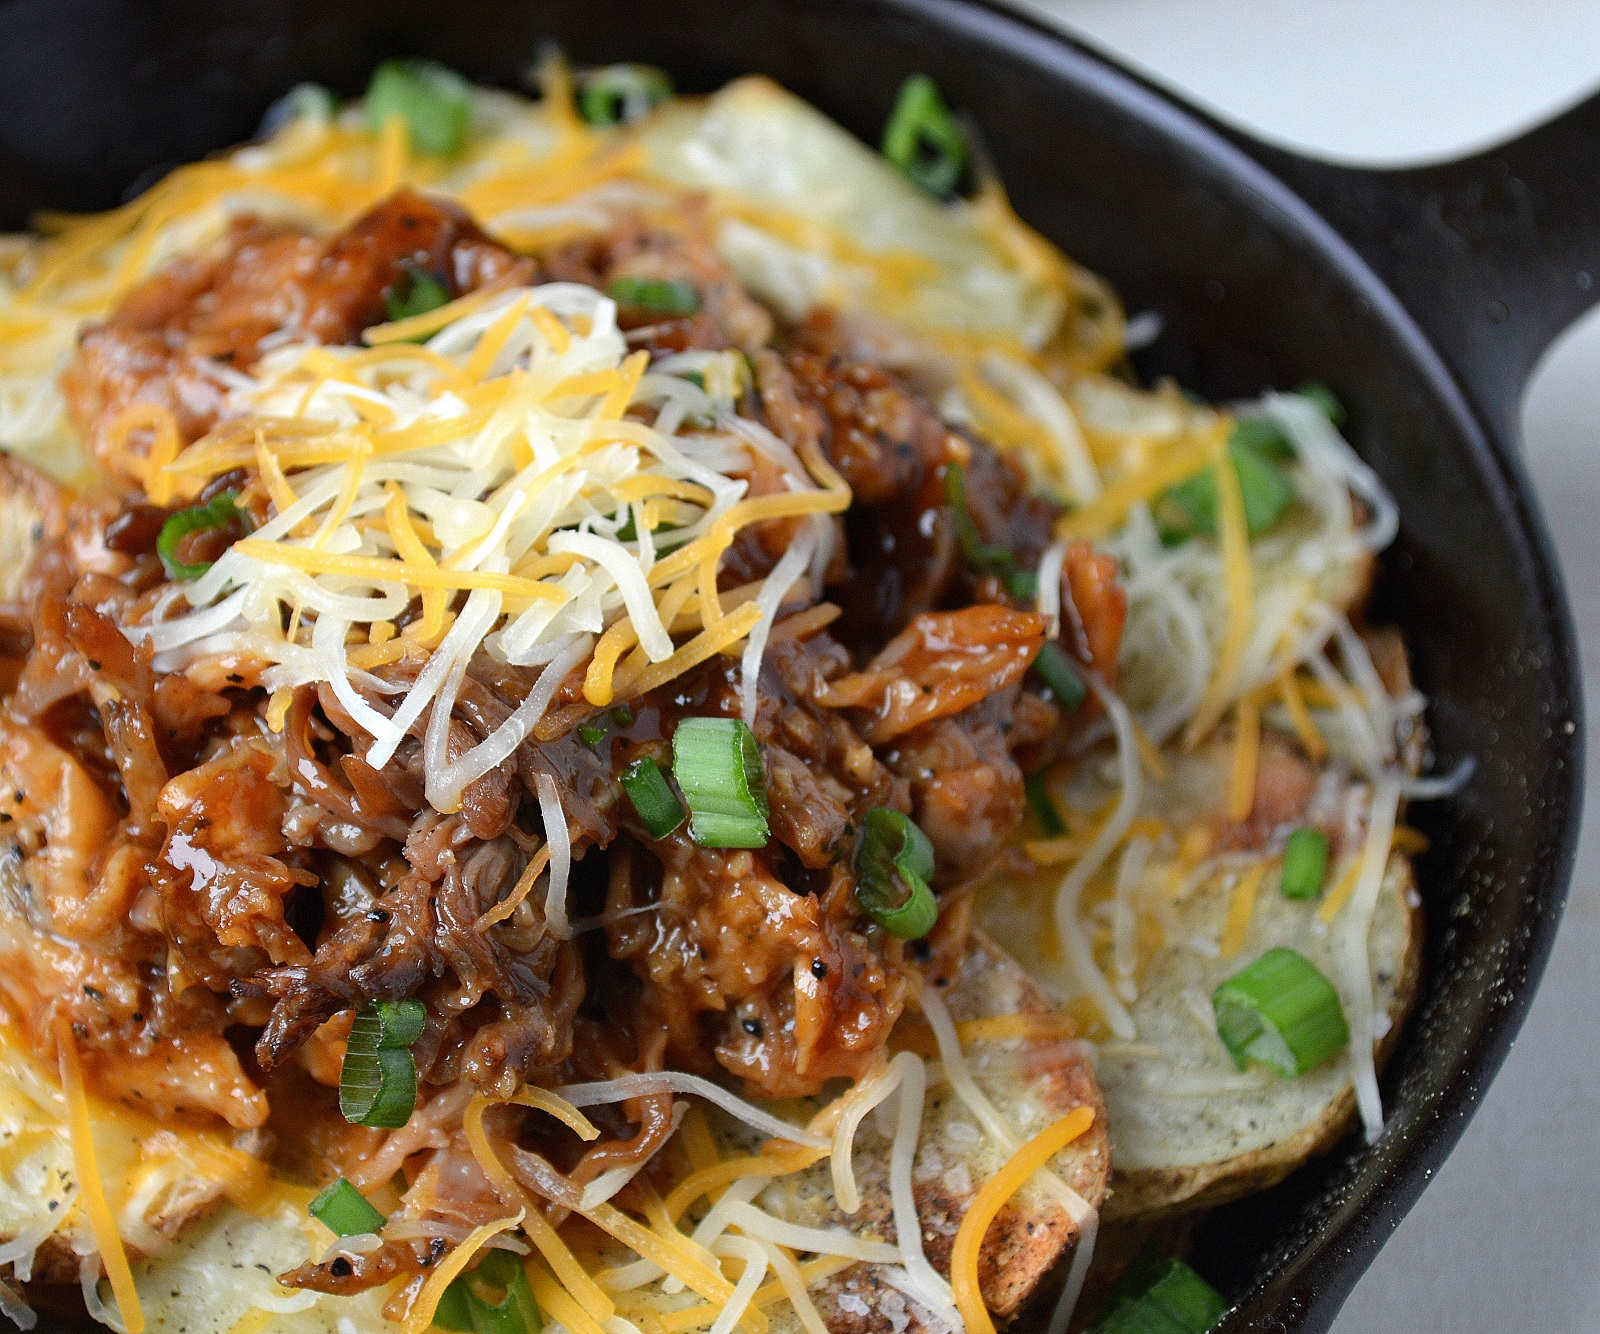 Pulled Pork Potato Nachos are a flavor explosion and a great gluten free offering!